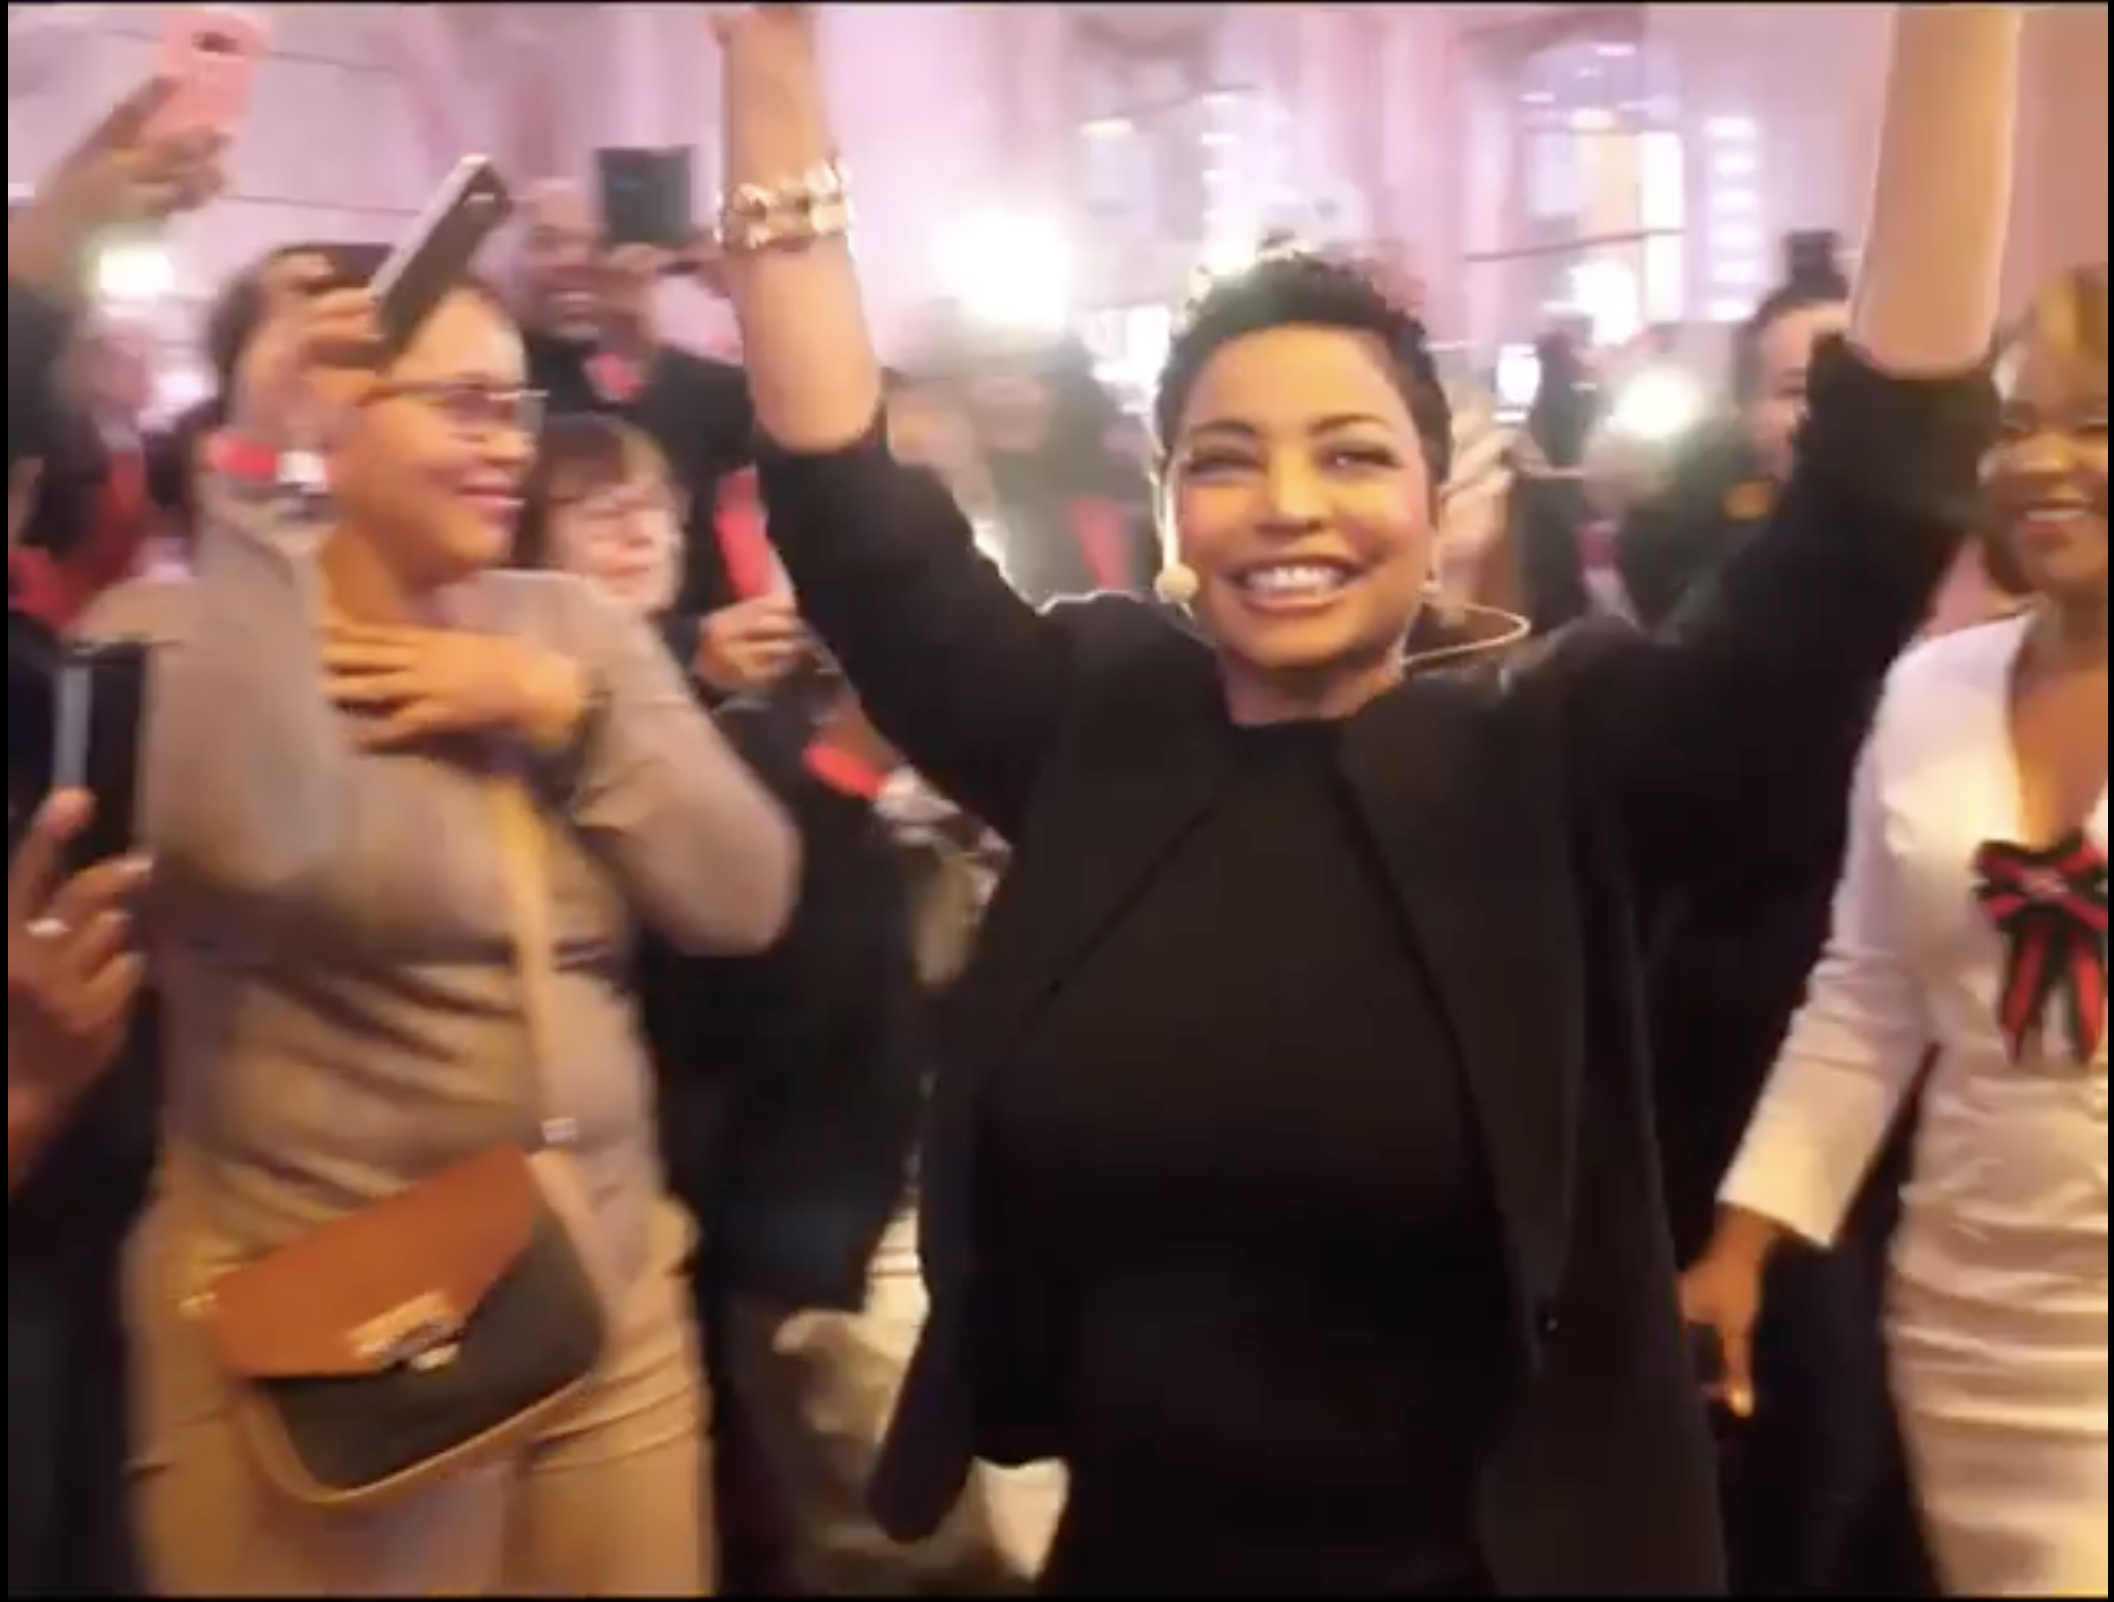 Judge Lynn Toler is Paris